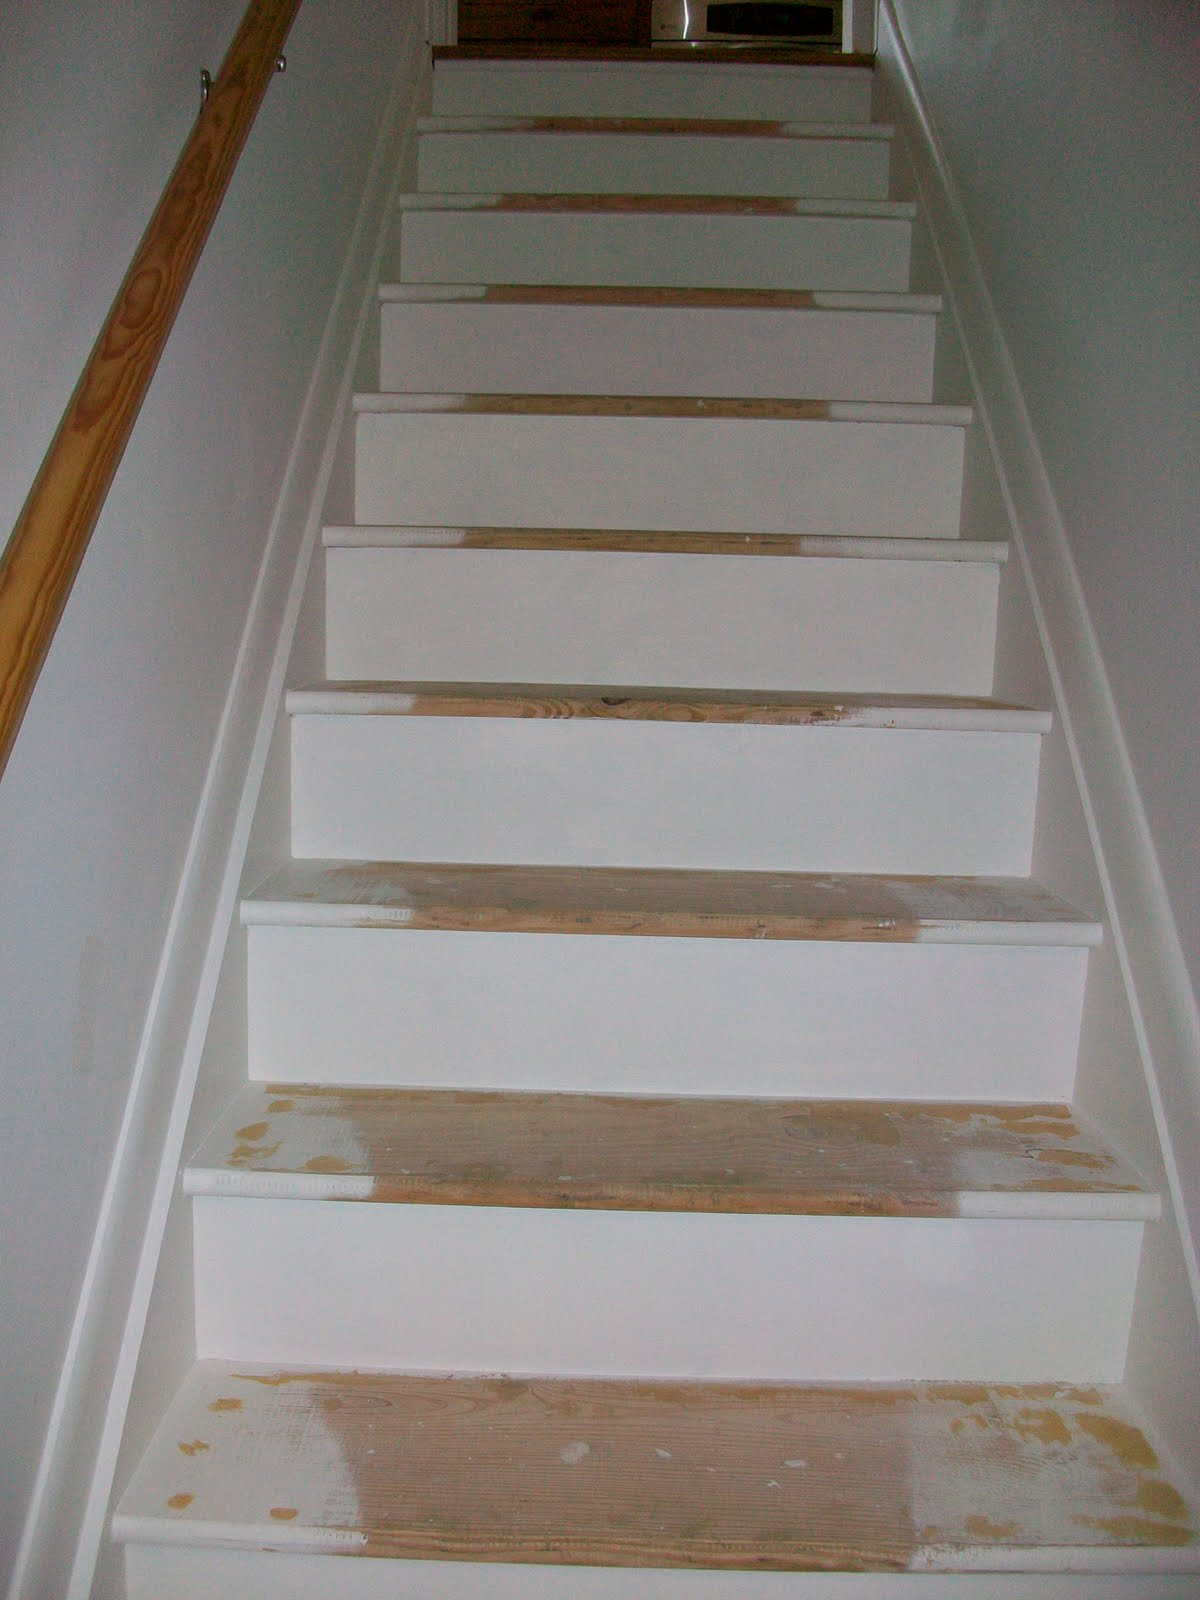 Pine Tree Home: Painted Stairs- One